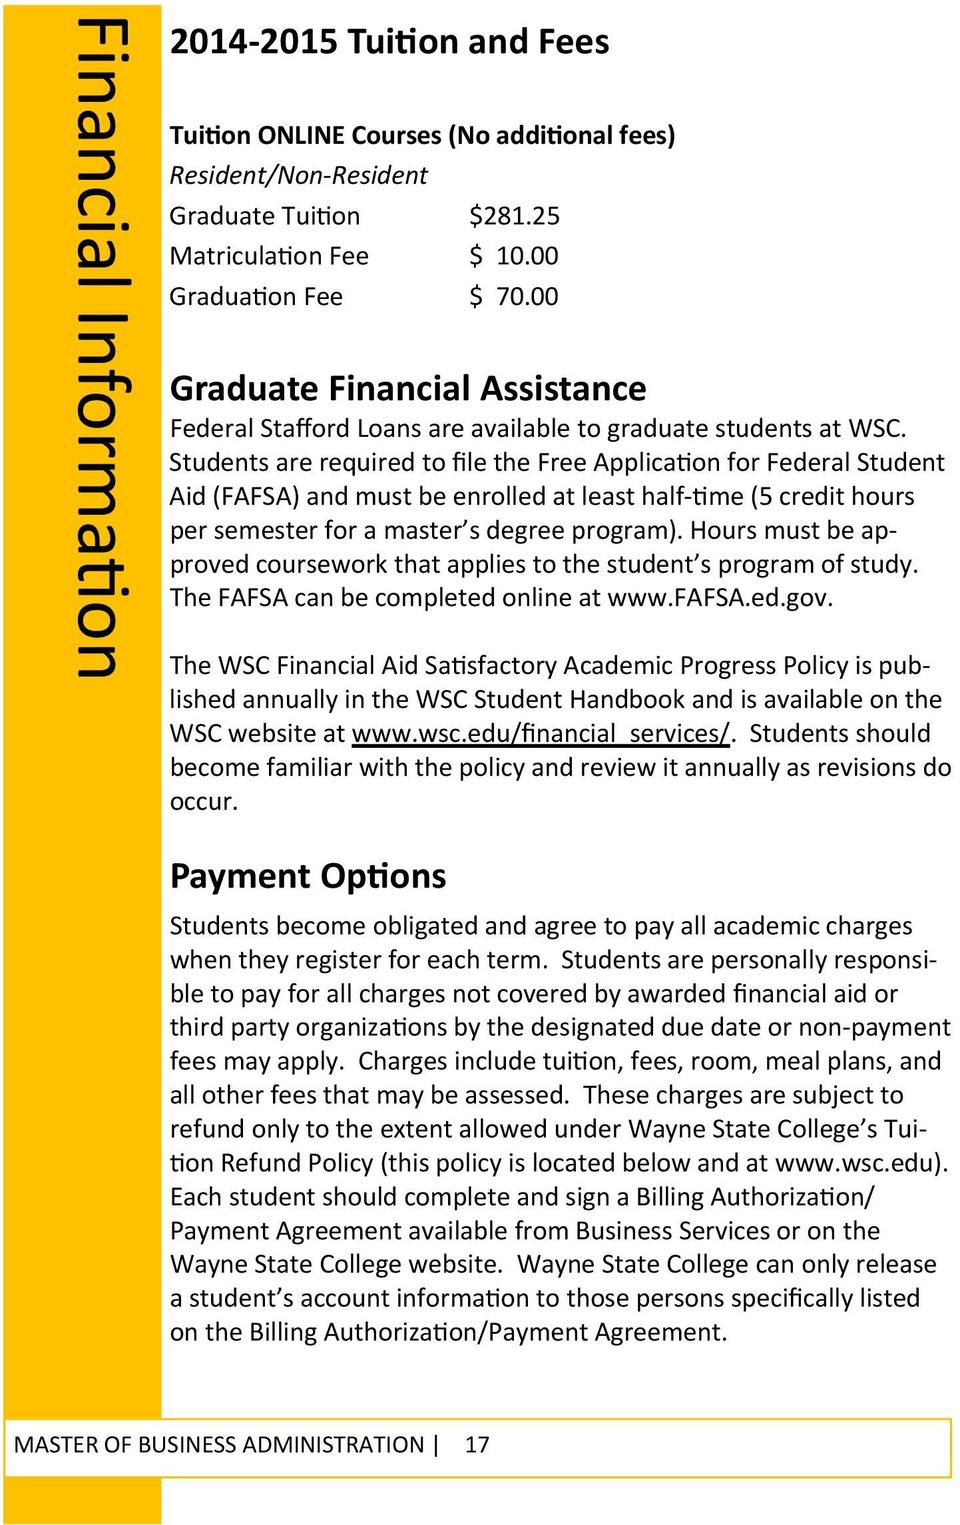 Students are required to file the Free Applica on for Federal Student Aid (FAFSA) and must be enrolled at least half me (5 credit hours per semester for a master s degree program).